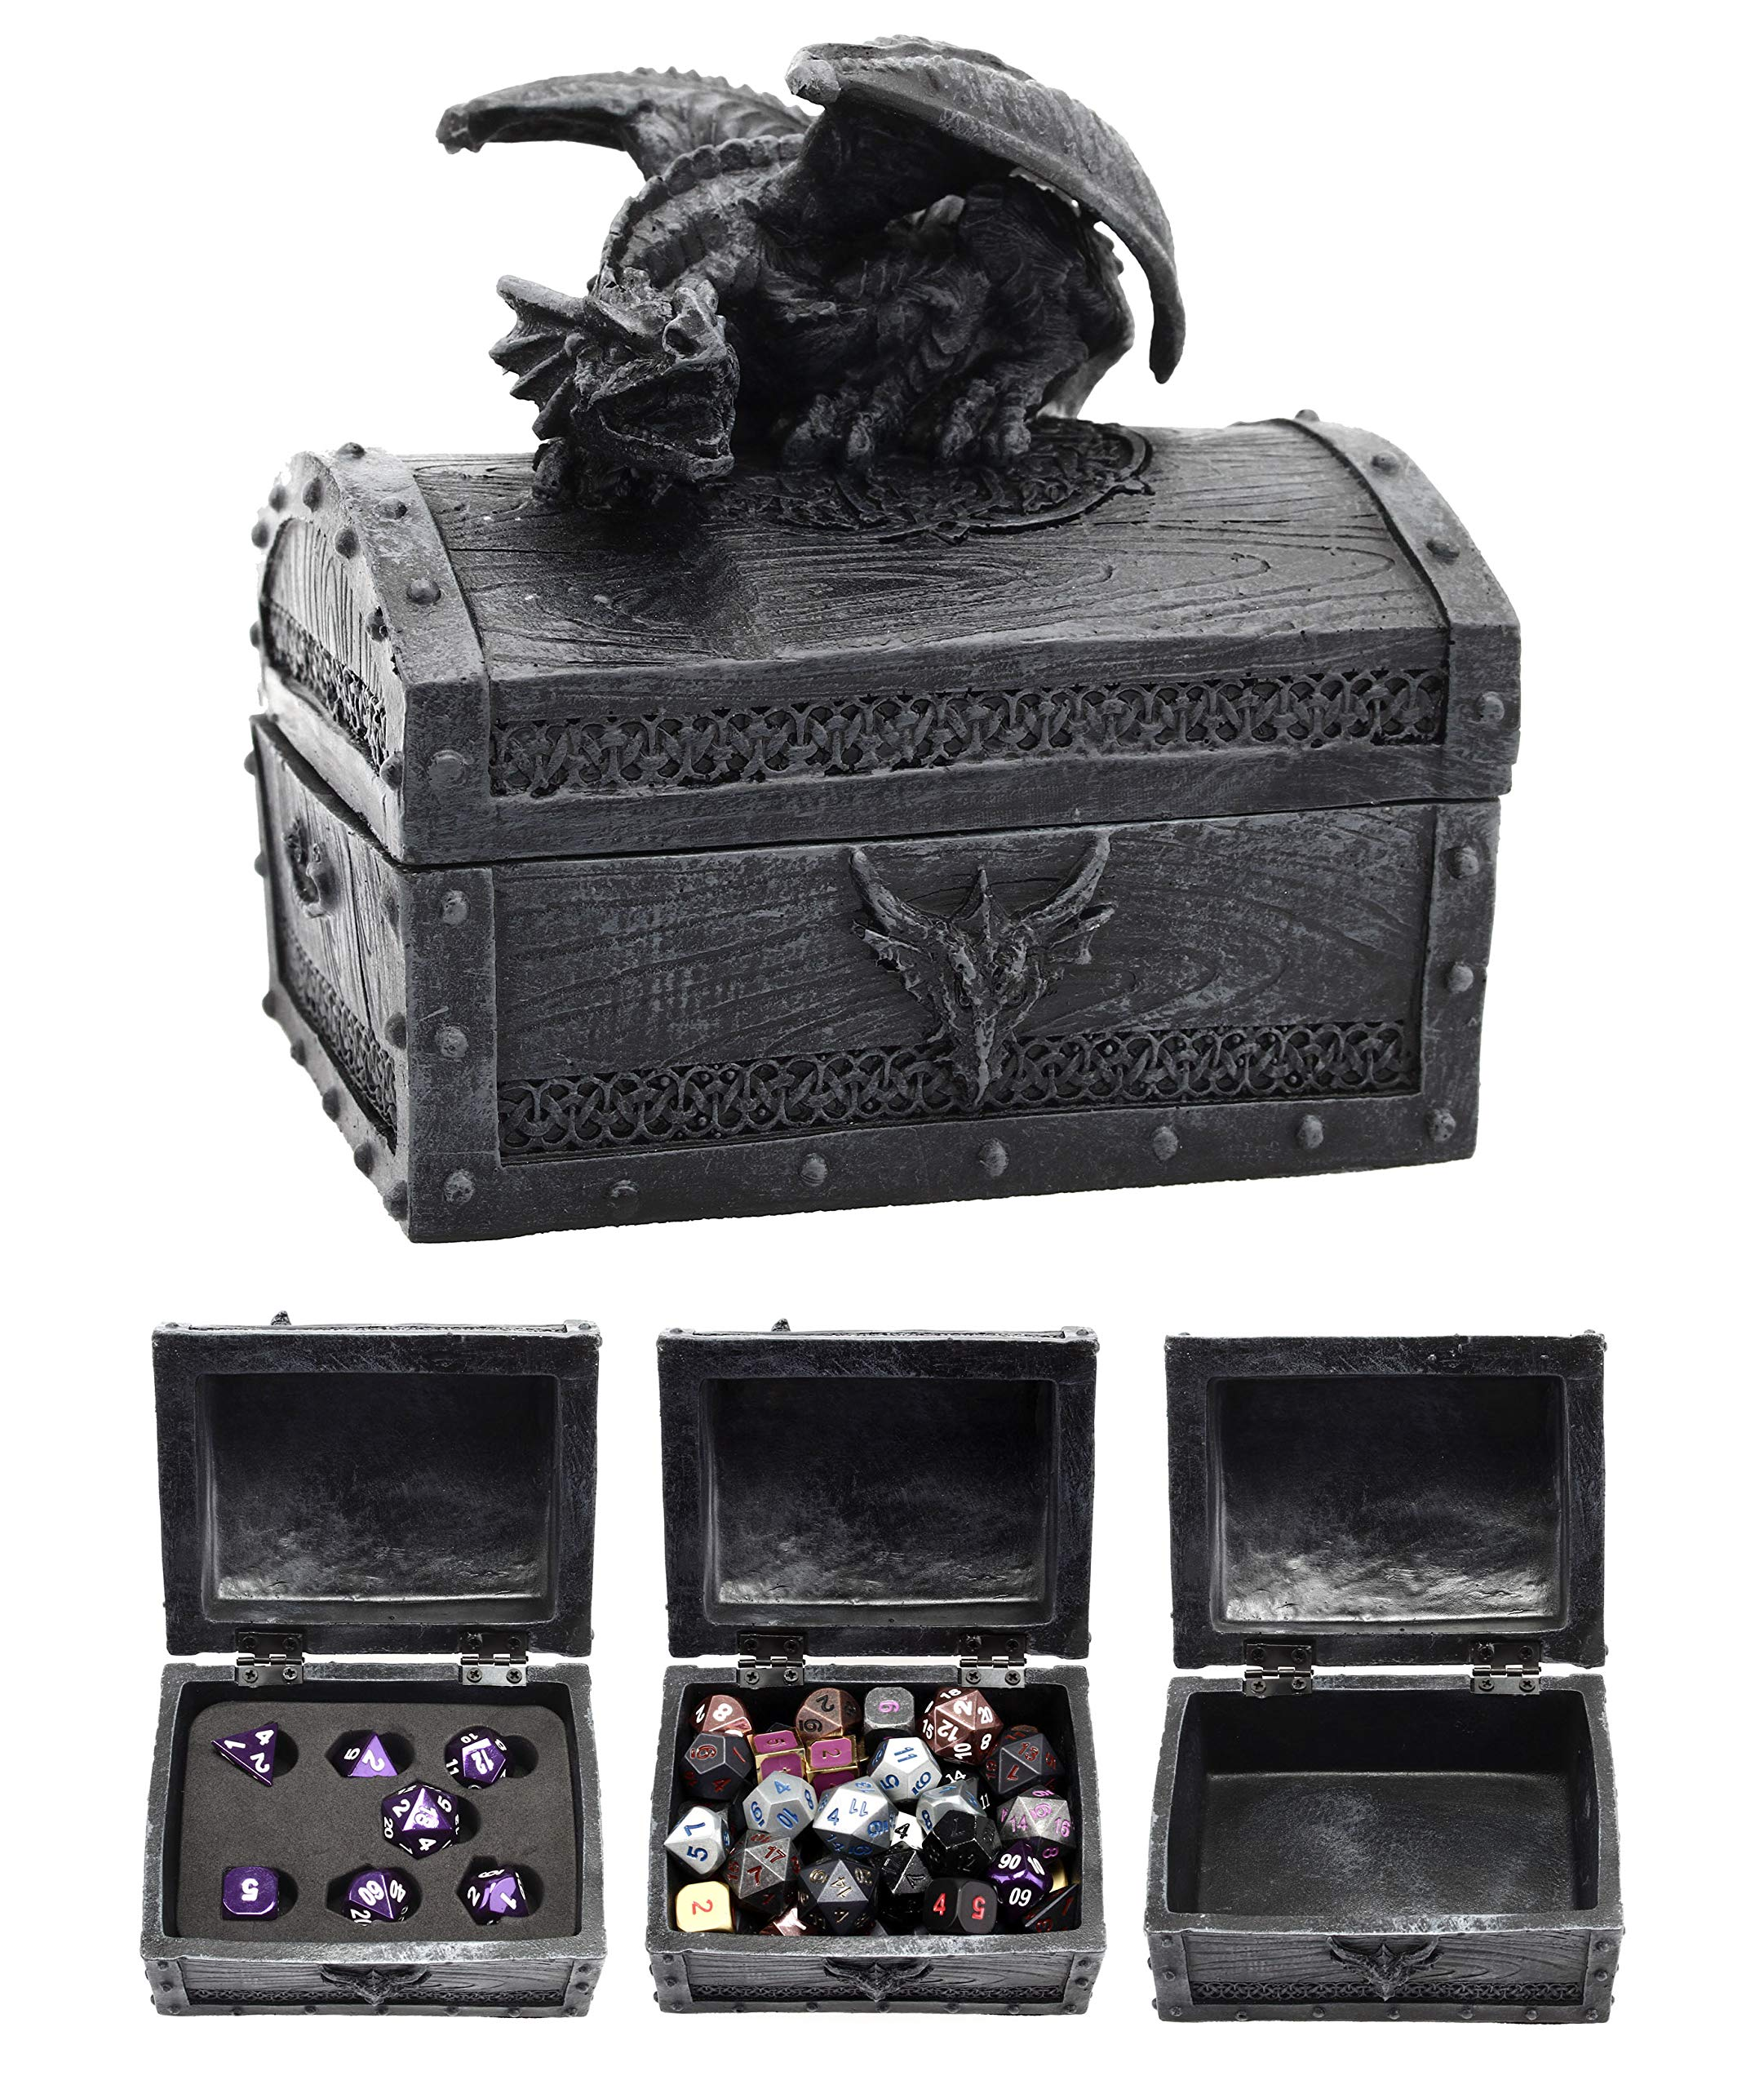 Forged Dice Co. Deluxe Dragon Dice Storage Box with Custom Dice Foam Insert - Container Holds up to 6 Sets of Polyhedral Dice or 42 Individual Dice by Forged Dice Co.